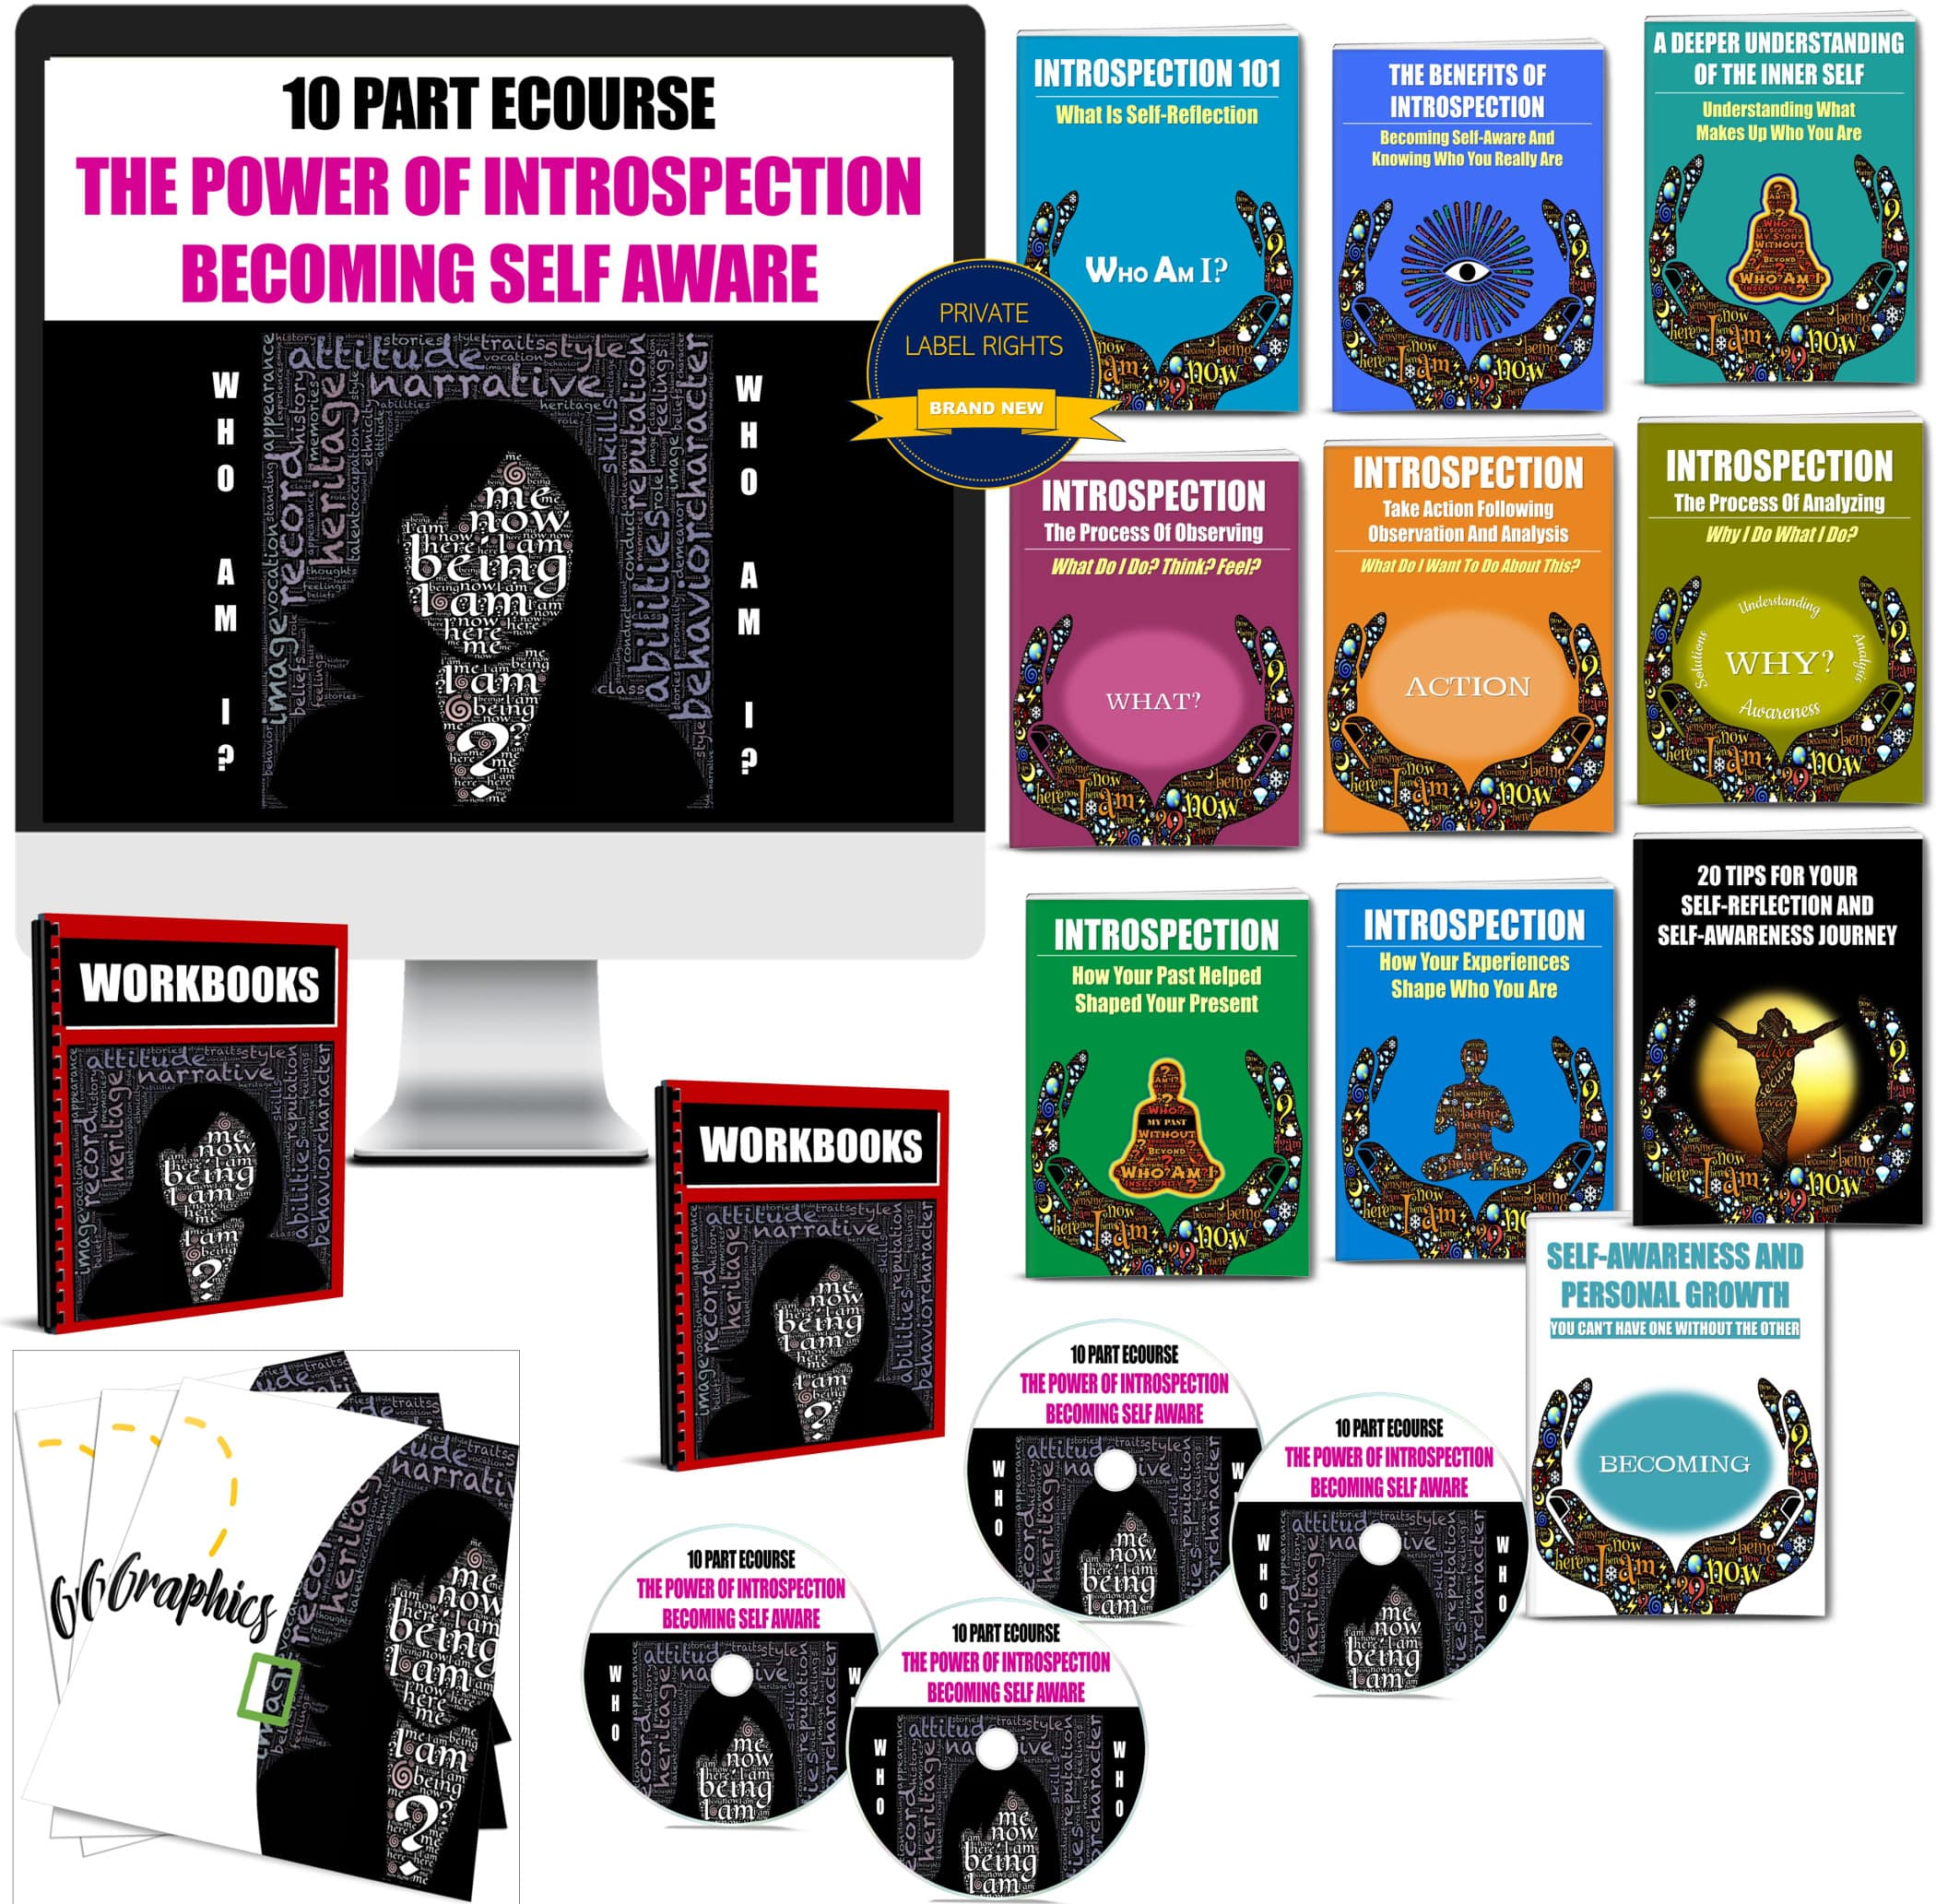 10 Part eCourse: Introspection: Becoming Self-Aware with PLR Rights